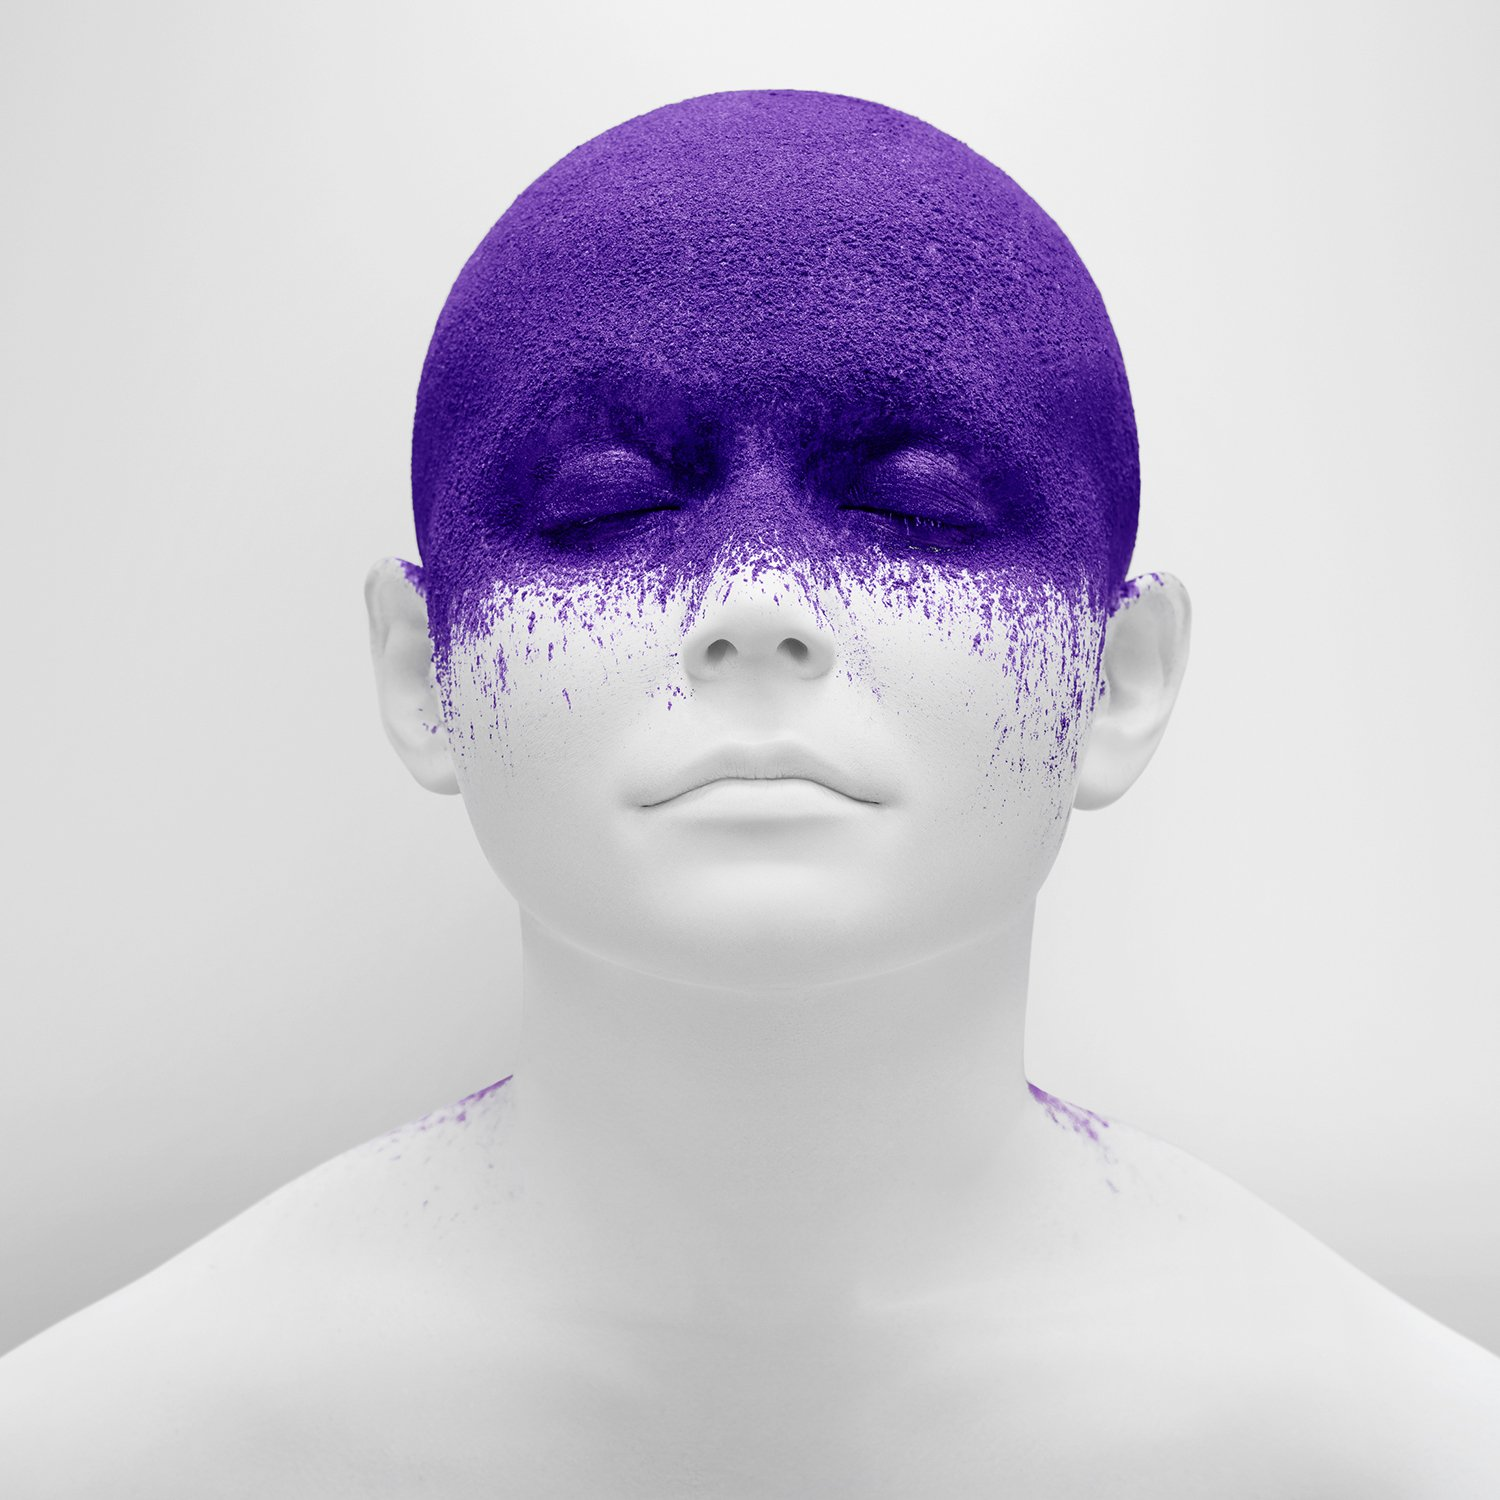 united states of purple, series by tim tadder